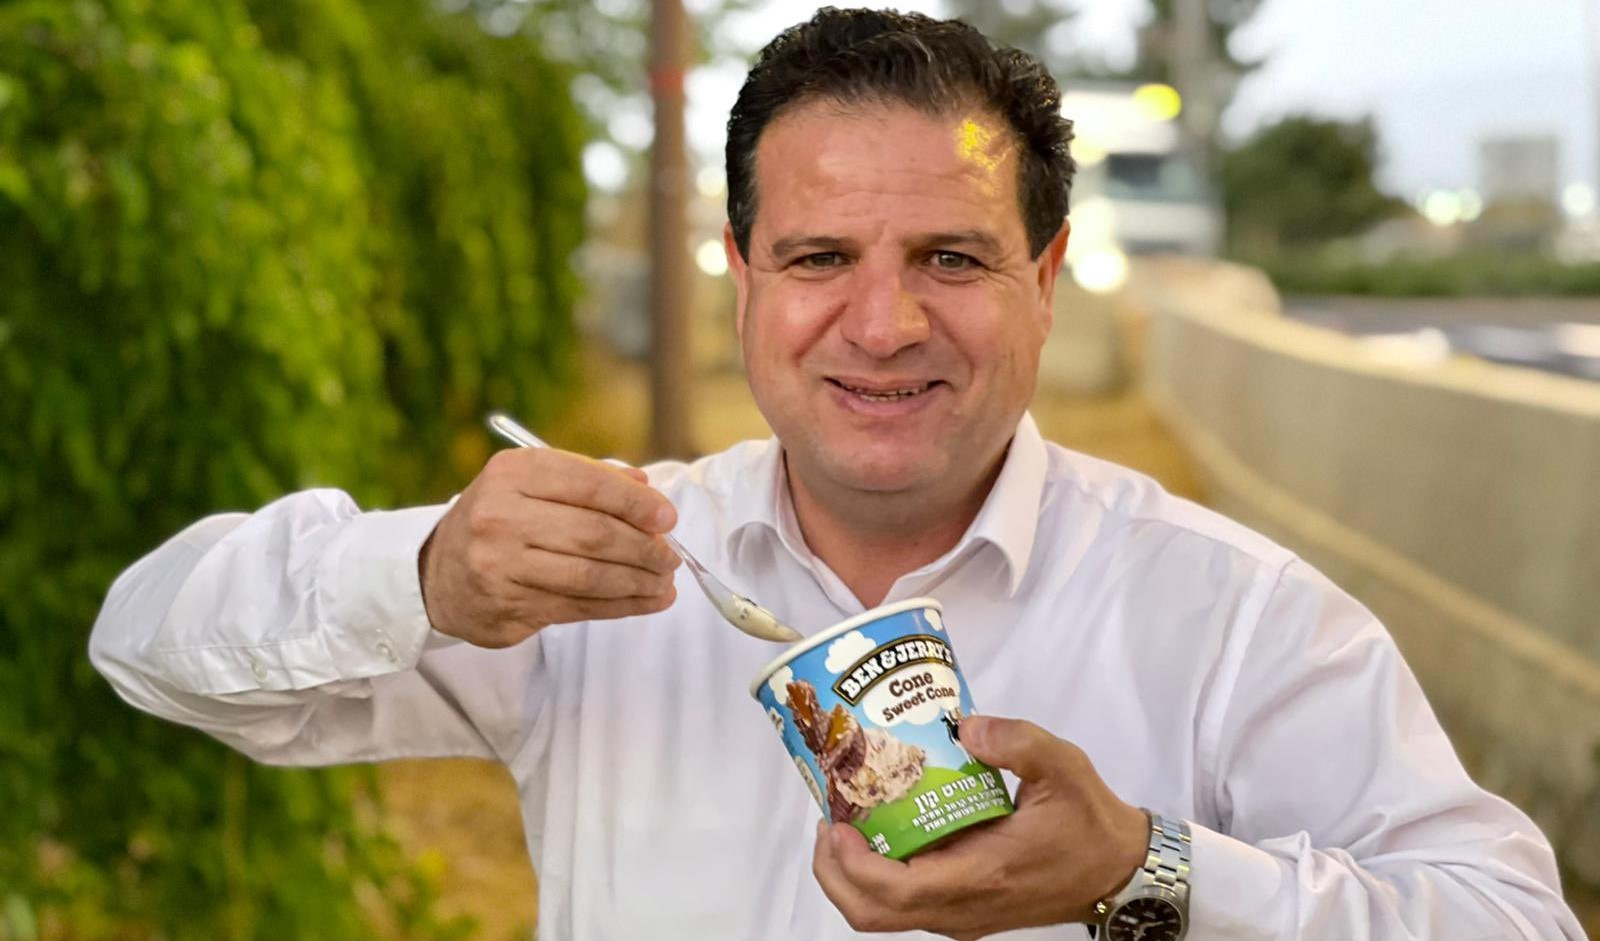 """Hadash MK Ayman Odeh, leader of the Joint List, tweeted this photograph of himself eating a tub of Ben & Jerry's """"Cone Sweet Cone"""" ice cream, Tuesday, July 13."""